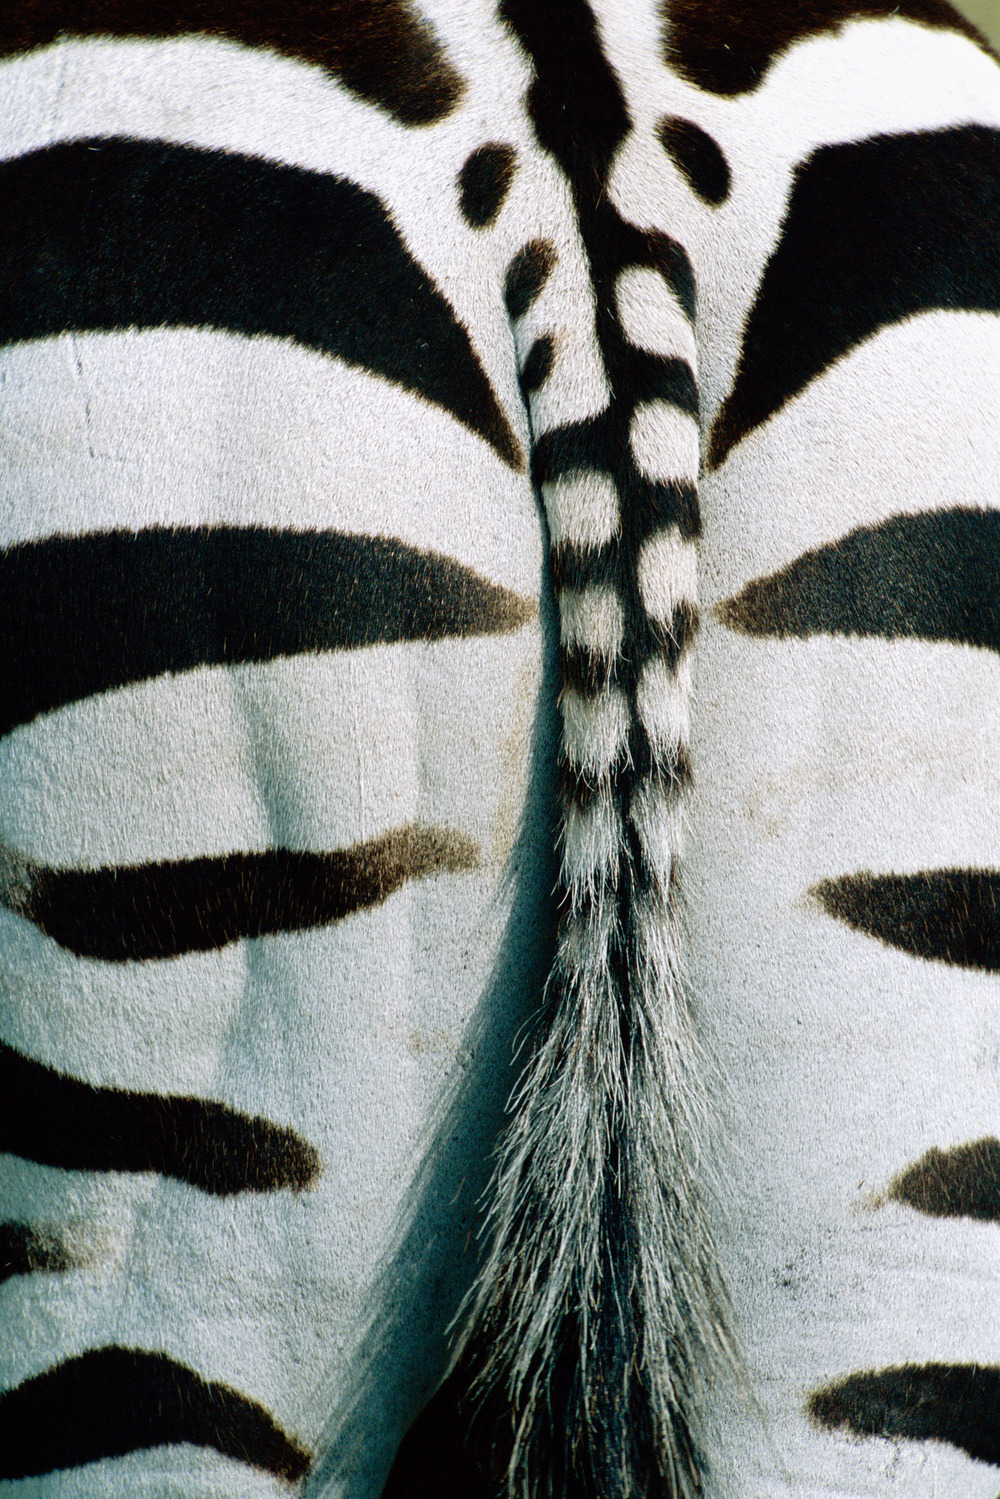 Common zebra behind detail, Masai Mara National Reserve, Kenya